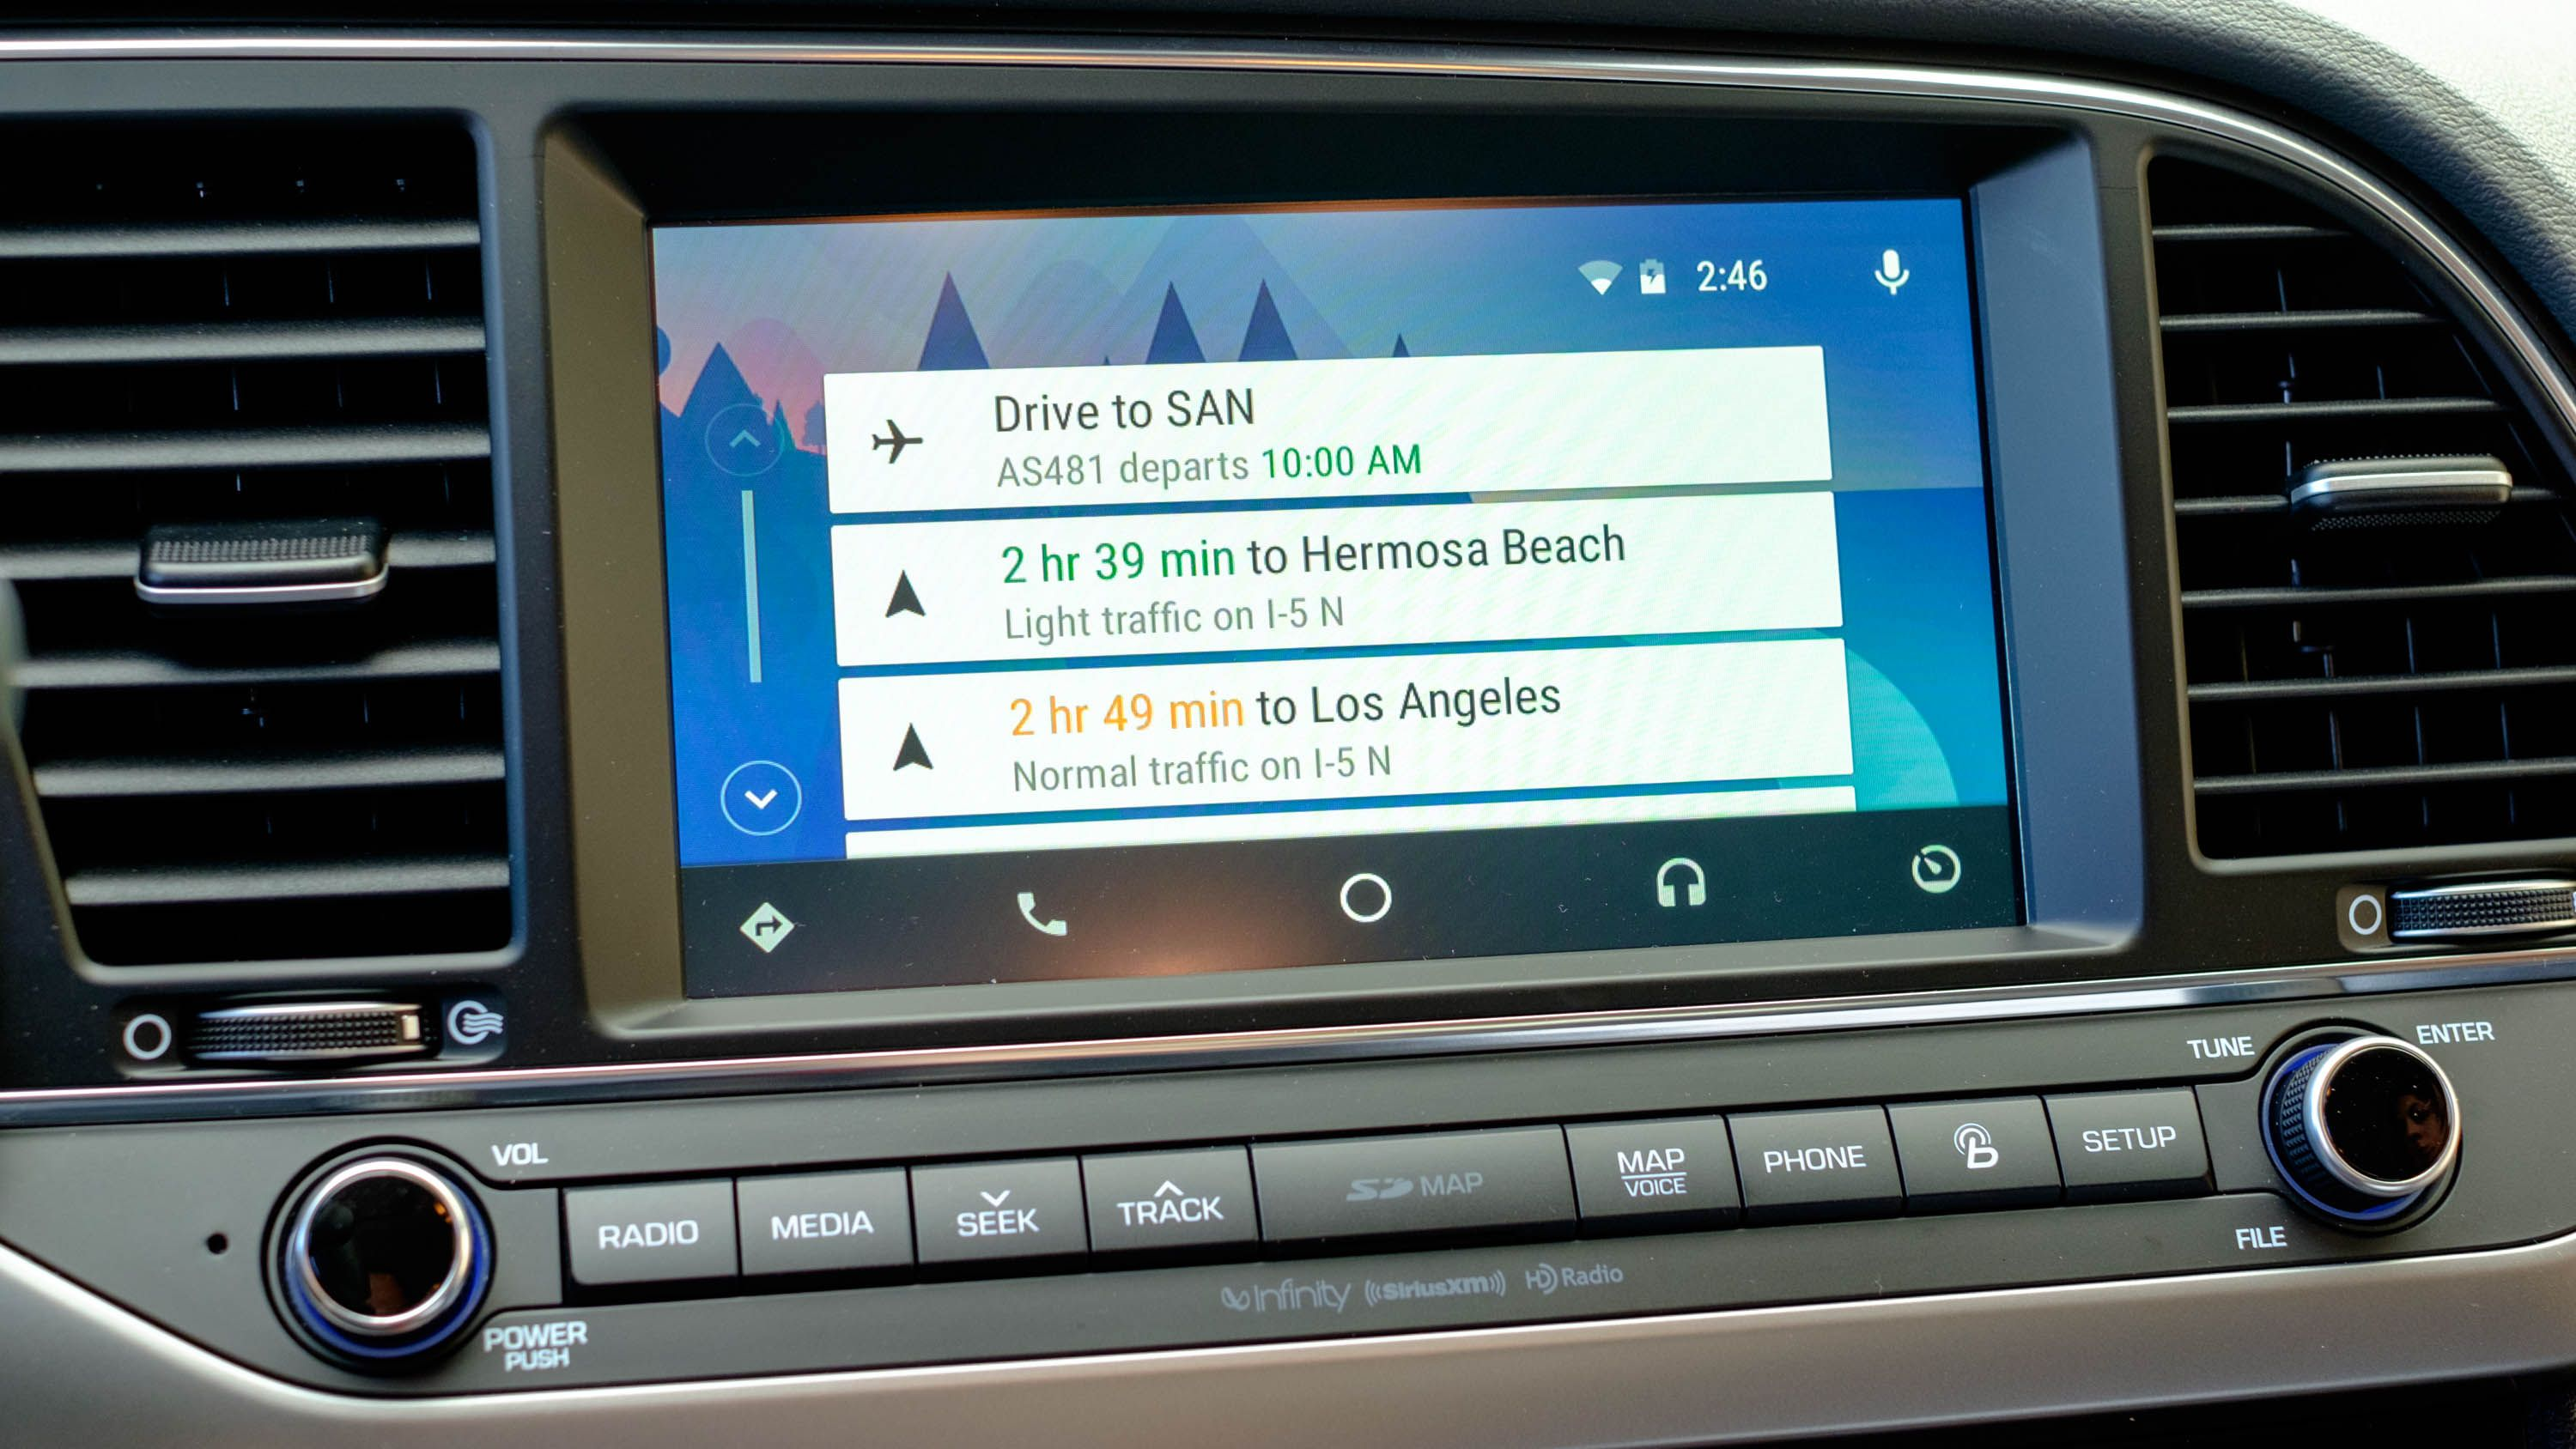 Android Auto Google's head unit for cars explained